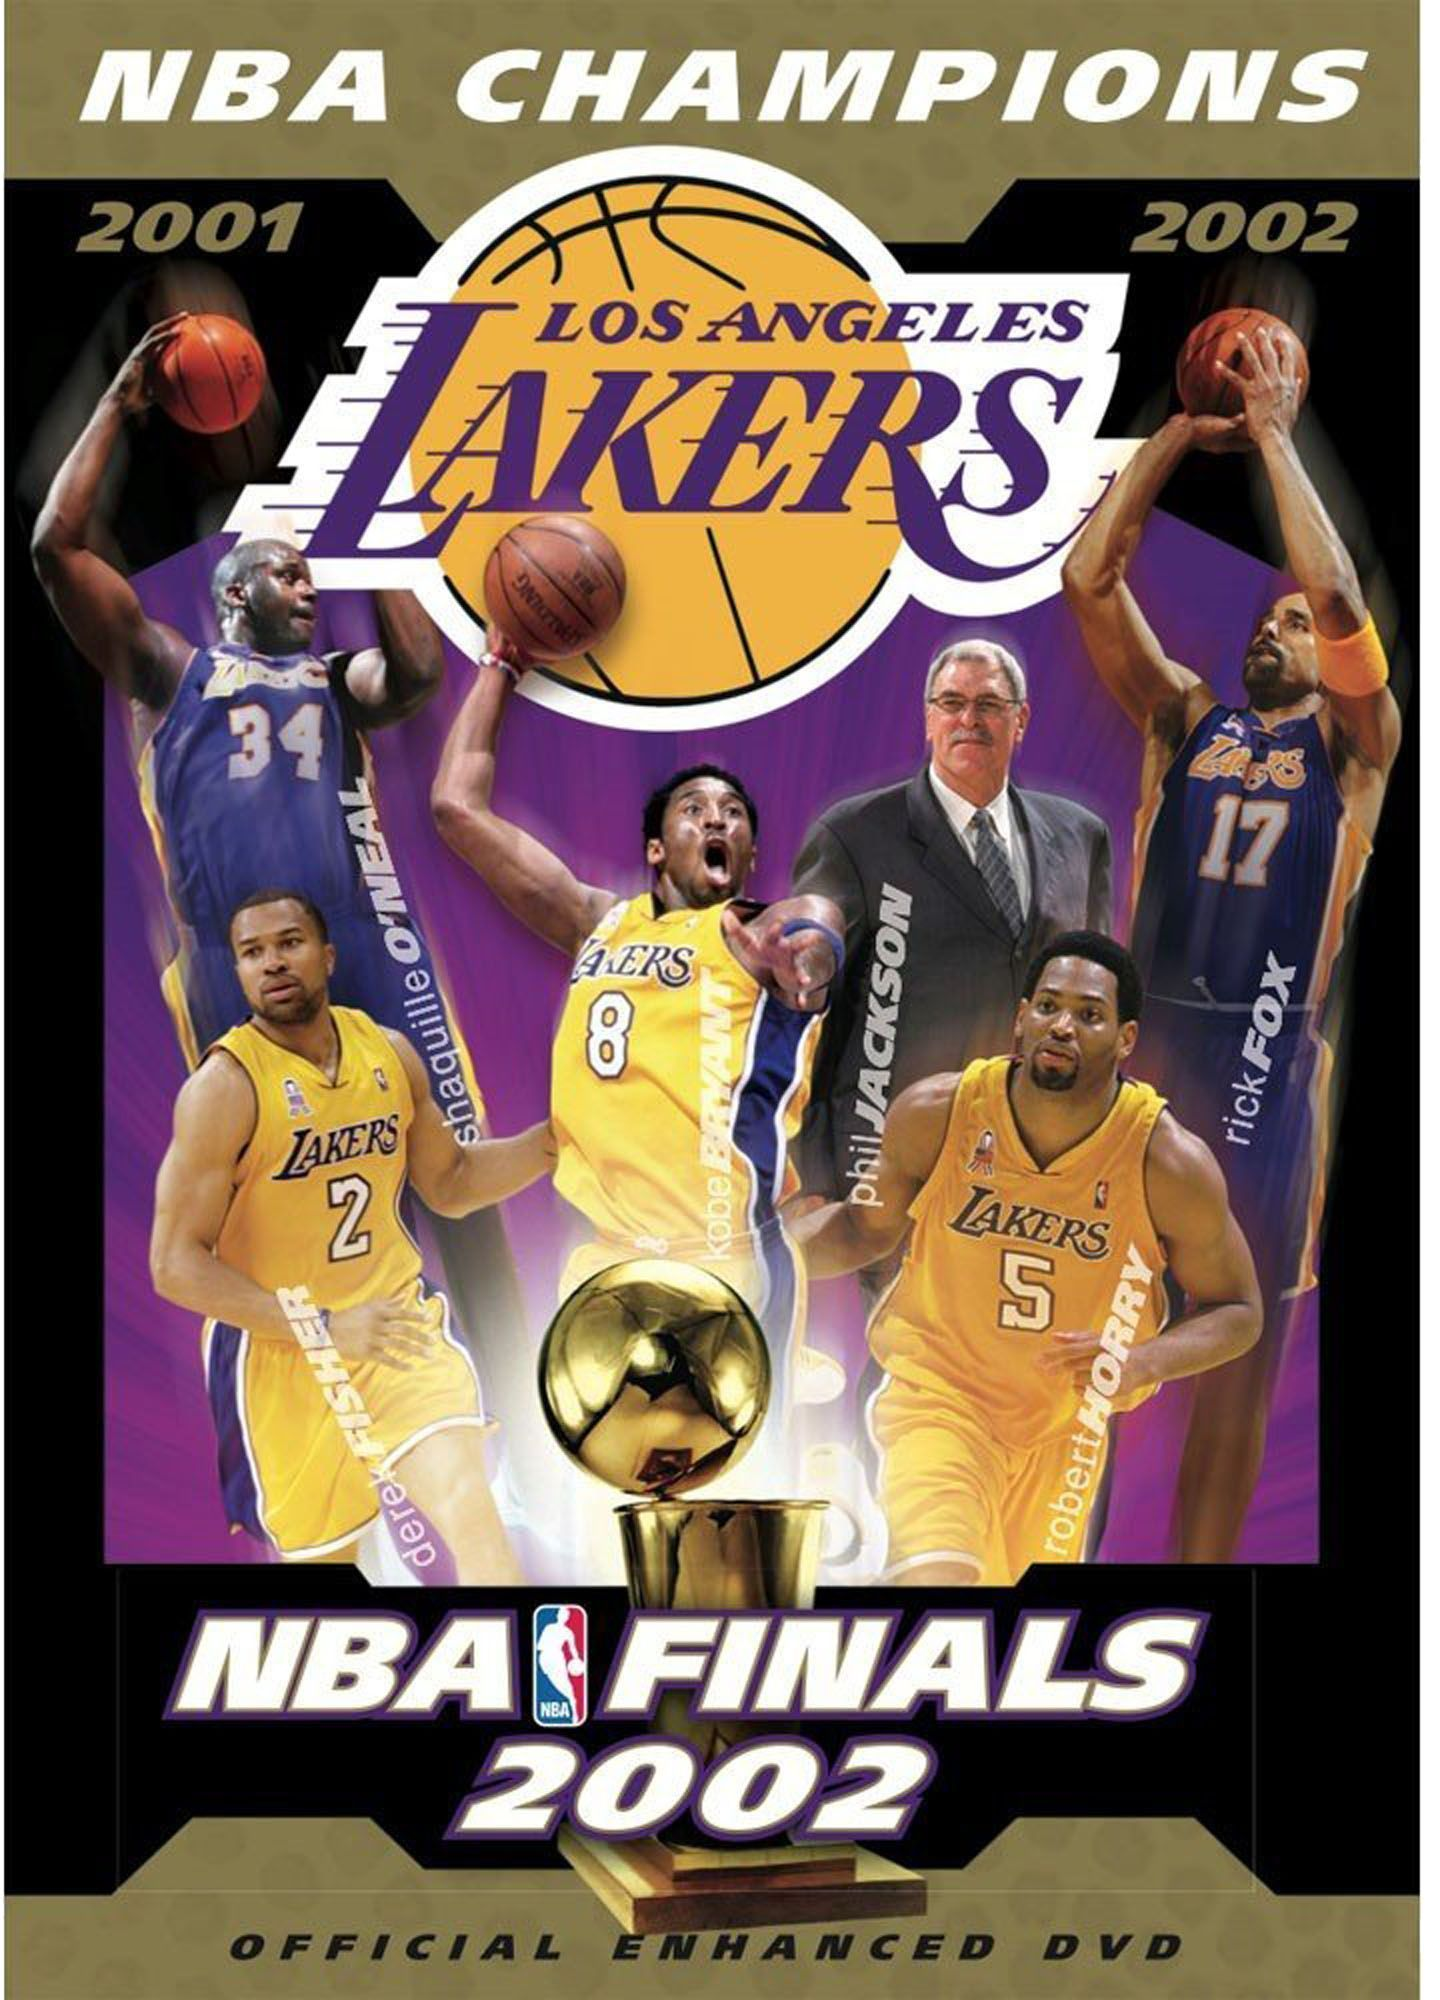 Nba Champions 2002 Los Angeles Lakers Dvd In 2020 Nba Champions Los Angeles Lakers Lakers